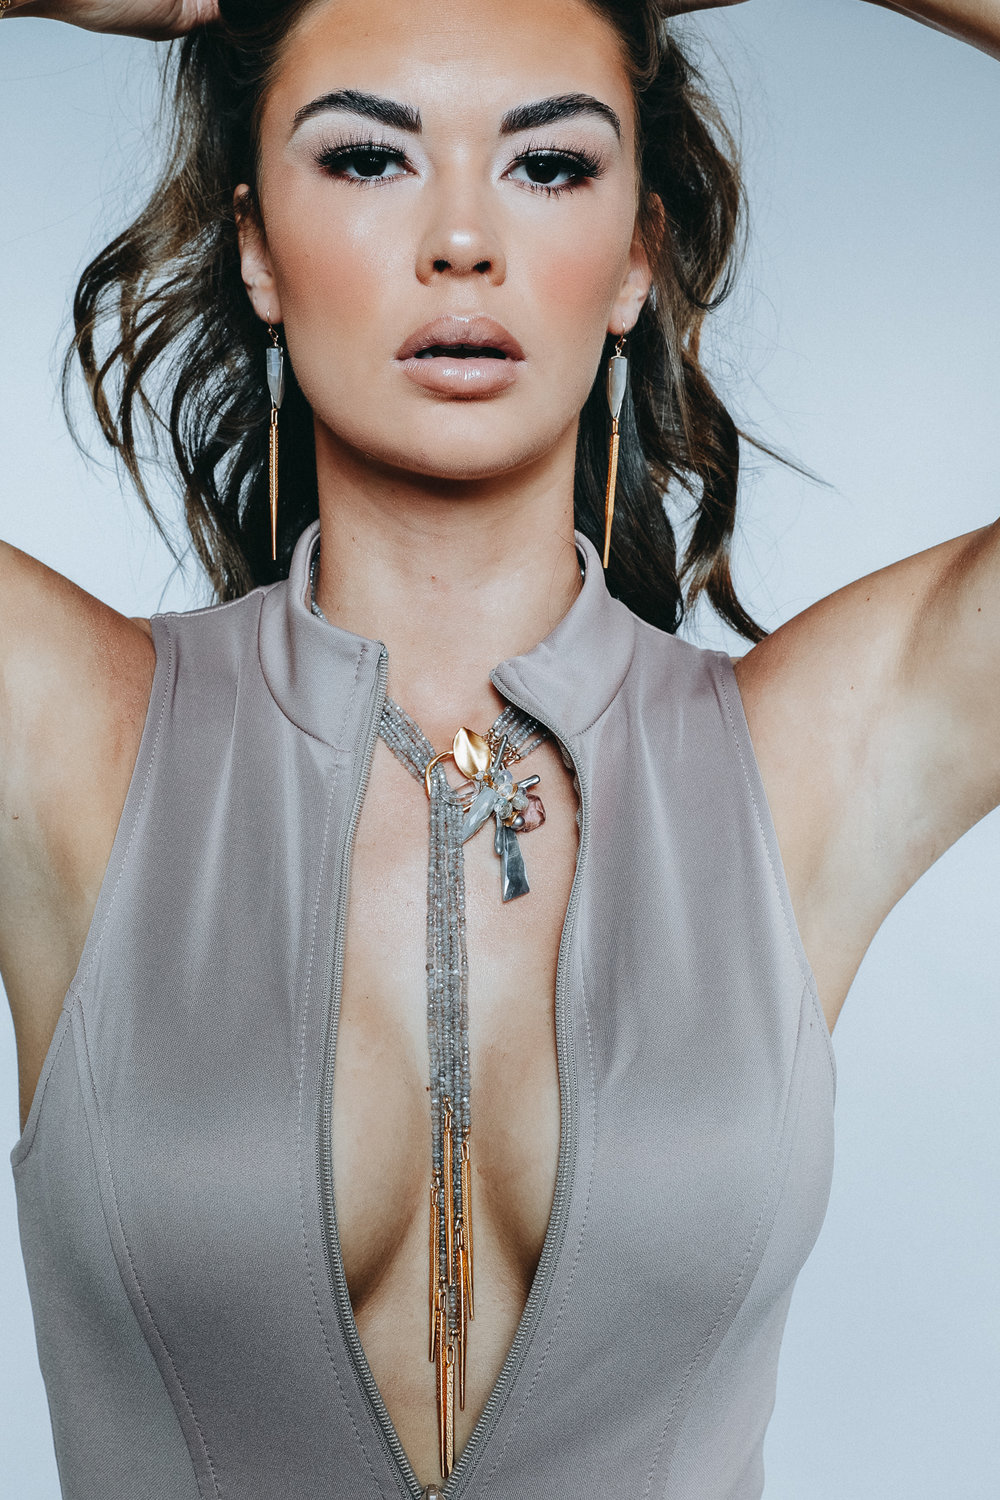 model wearing lariat necklace